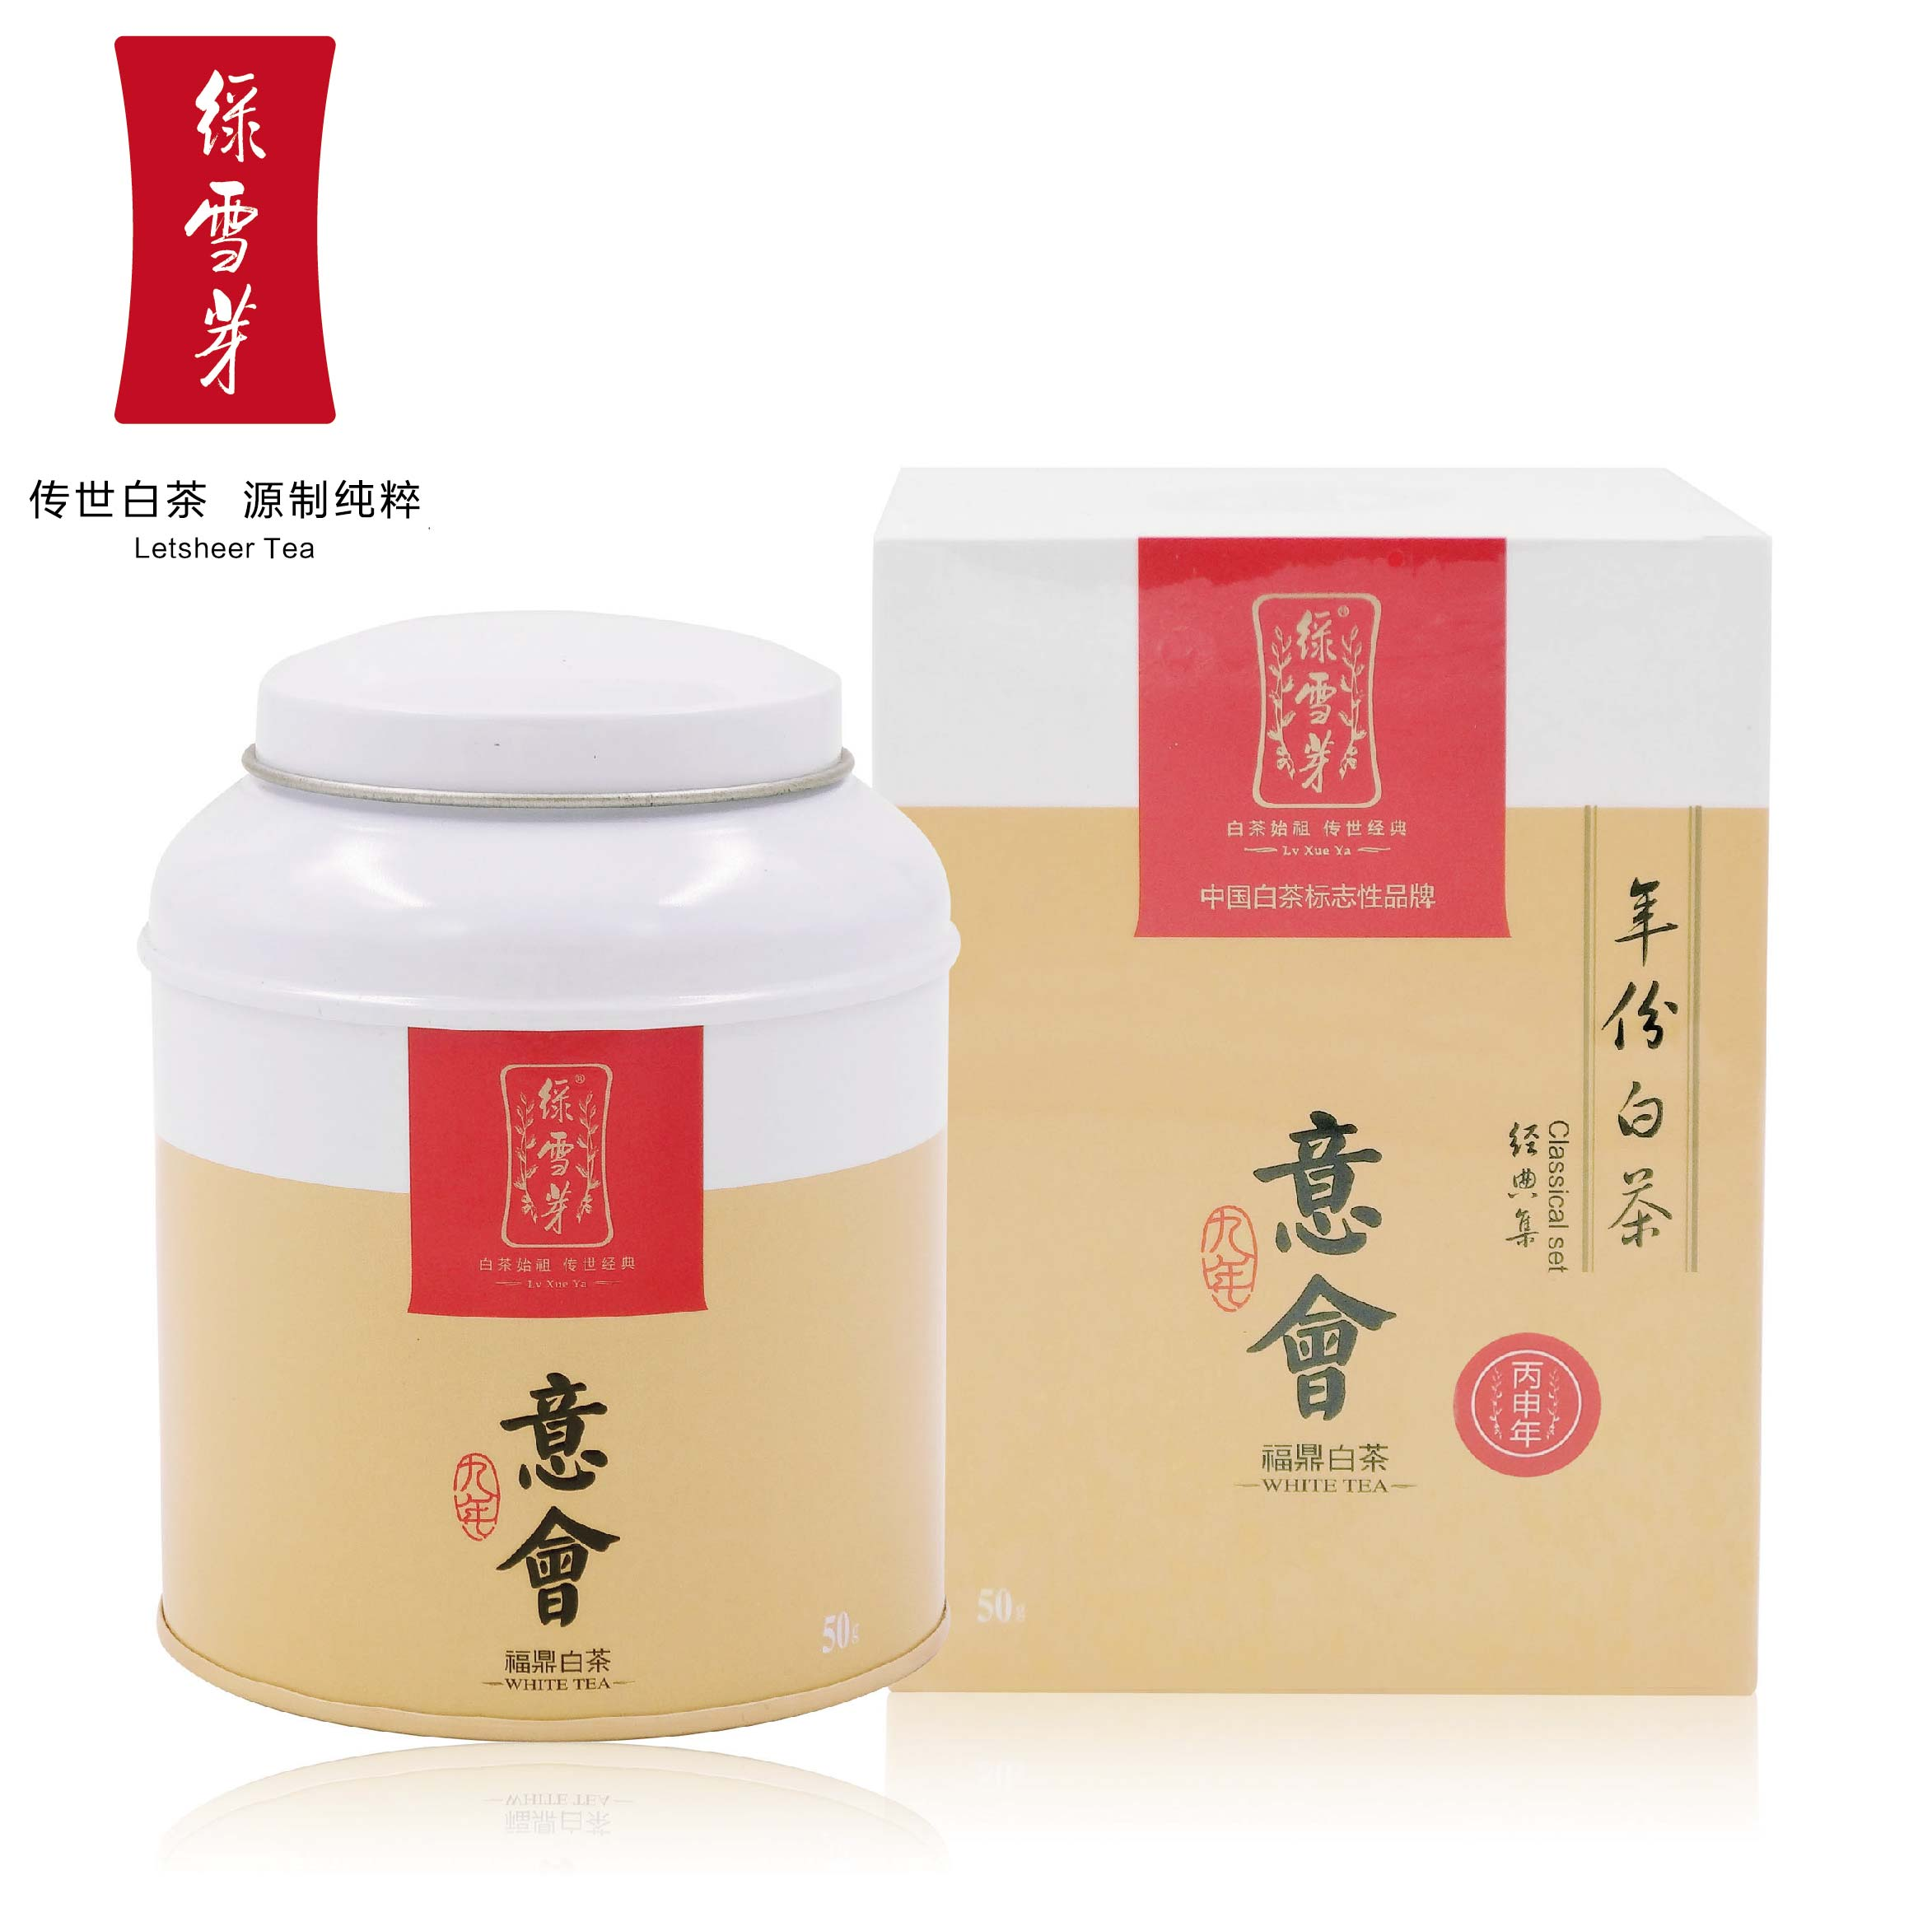 Green Snow Bud Tea Fuding White Tea Old White Tea Bing Shen Year 50g Small Round Canned